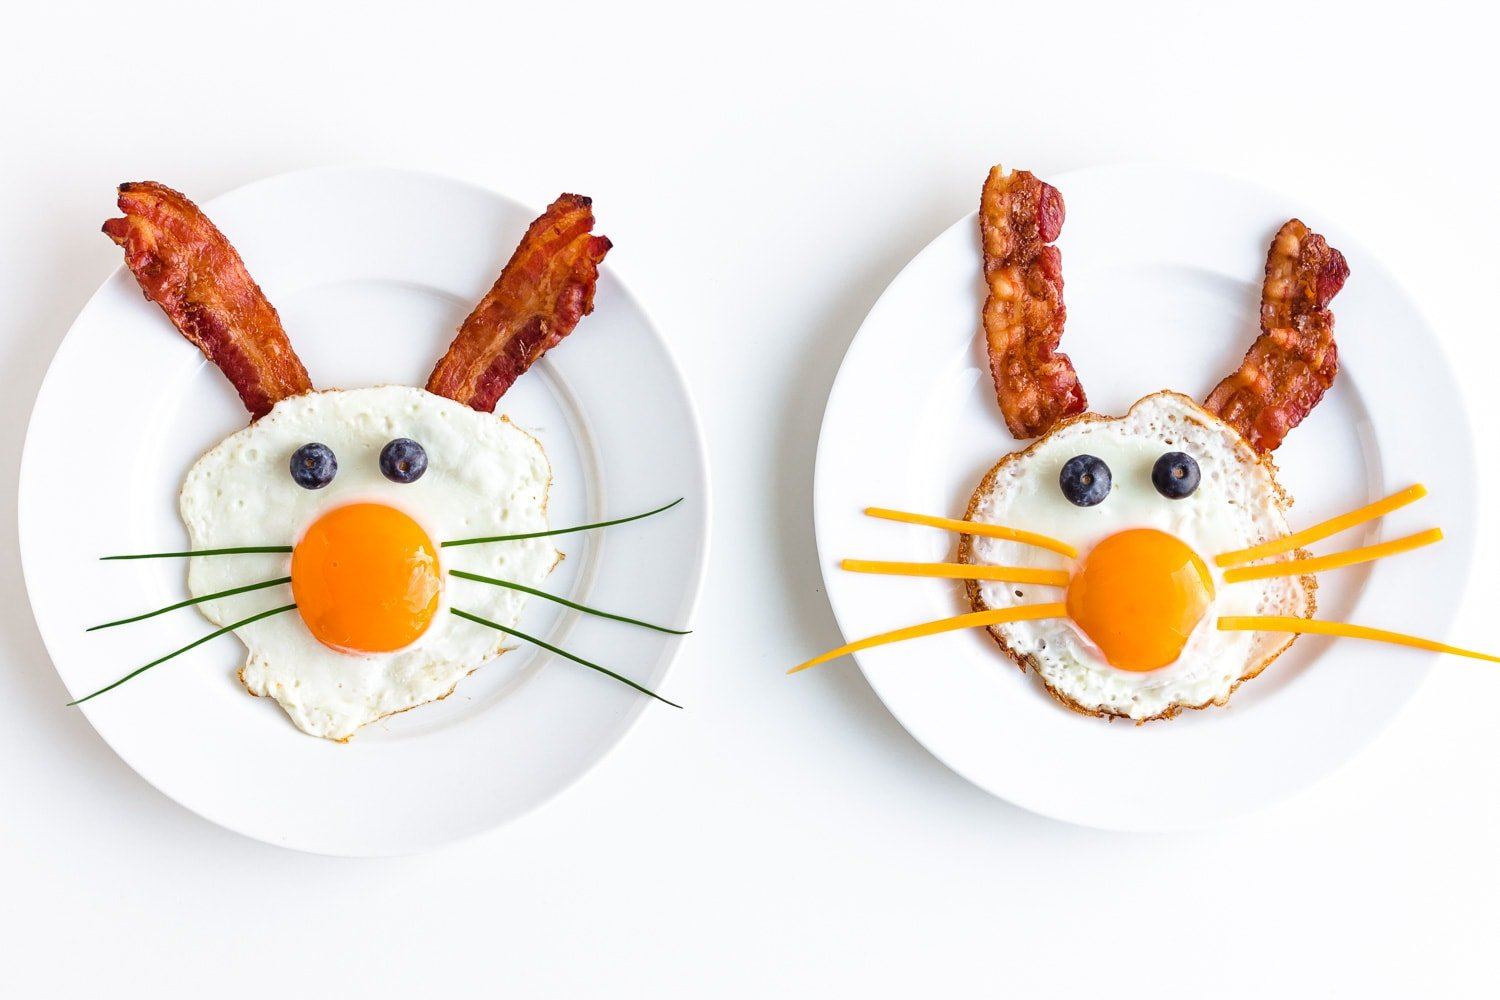 Two fried egg bunnies on white plates with bacon for ears, blueberries for eyes and chives or cheese for whiskers.